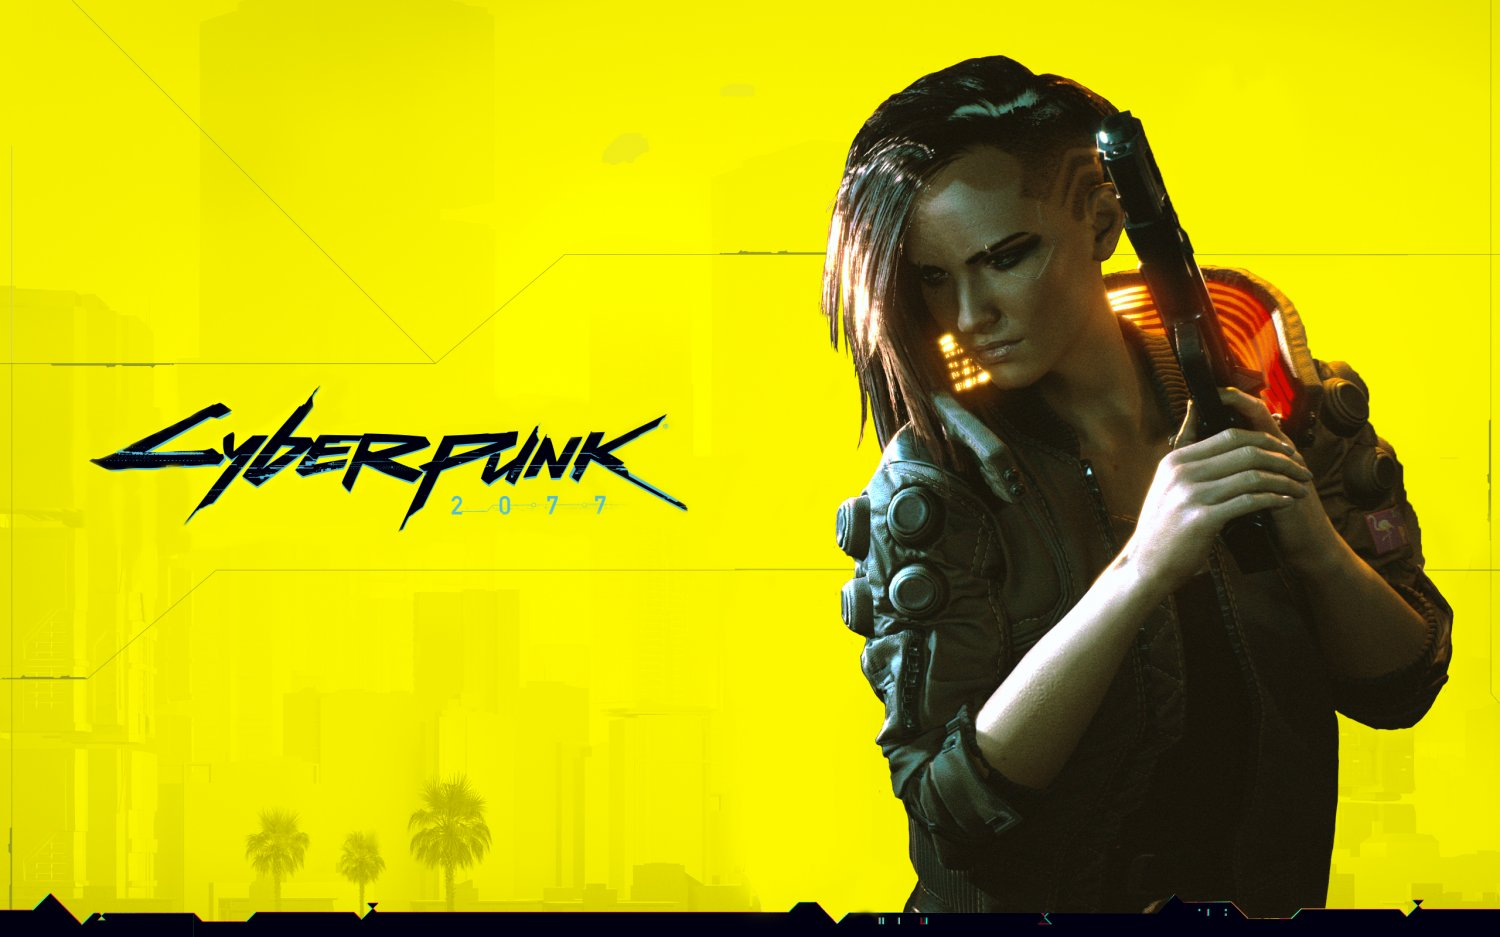 Cyberpunk 2077   18x28 inches Canvas Print